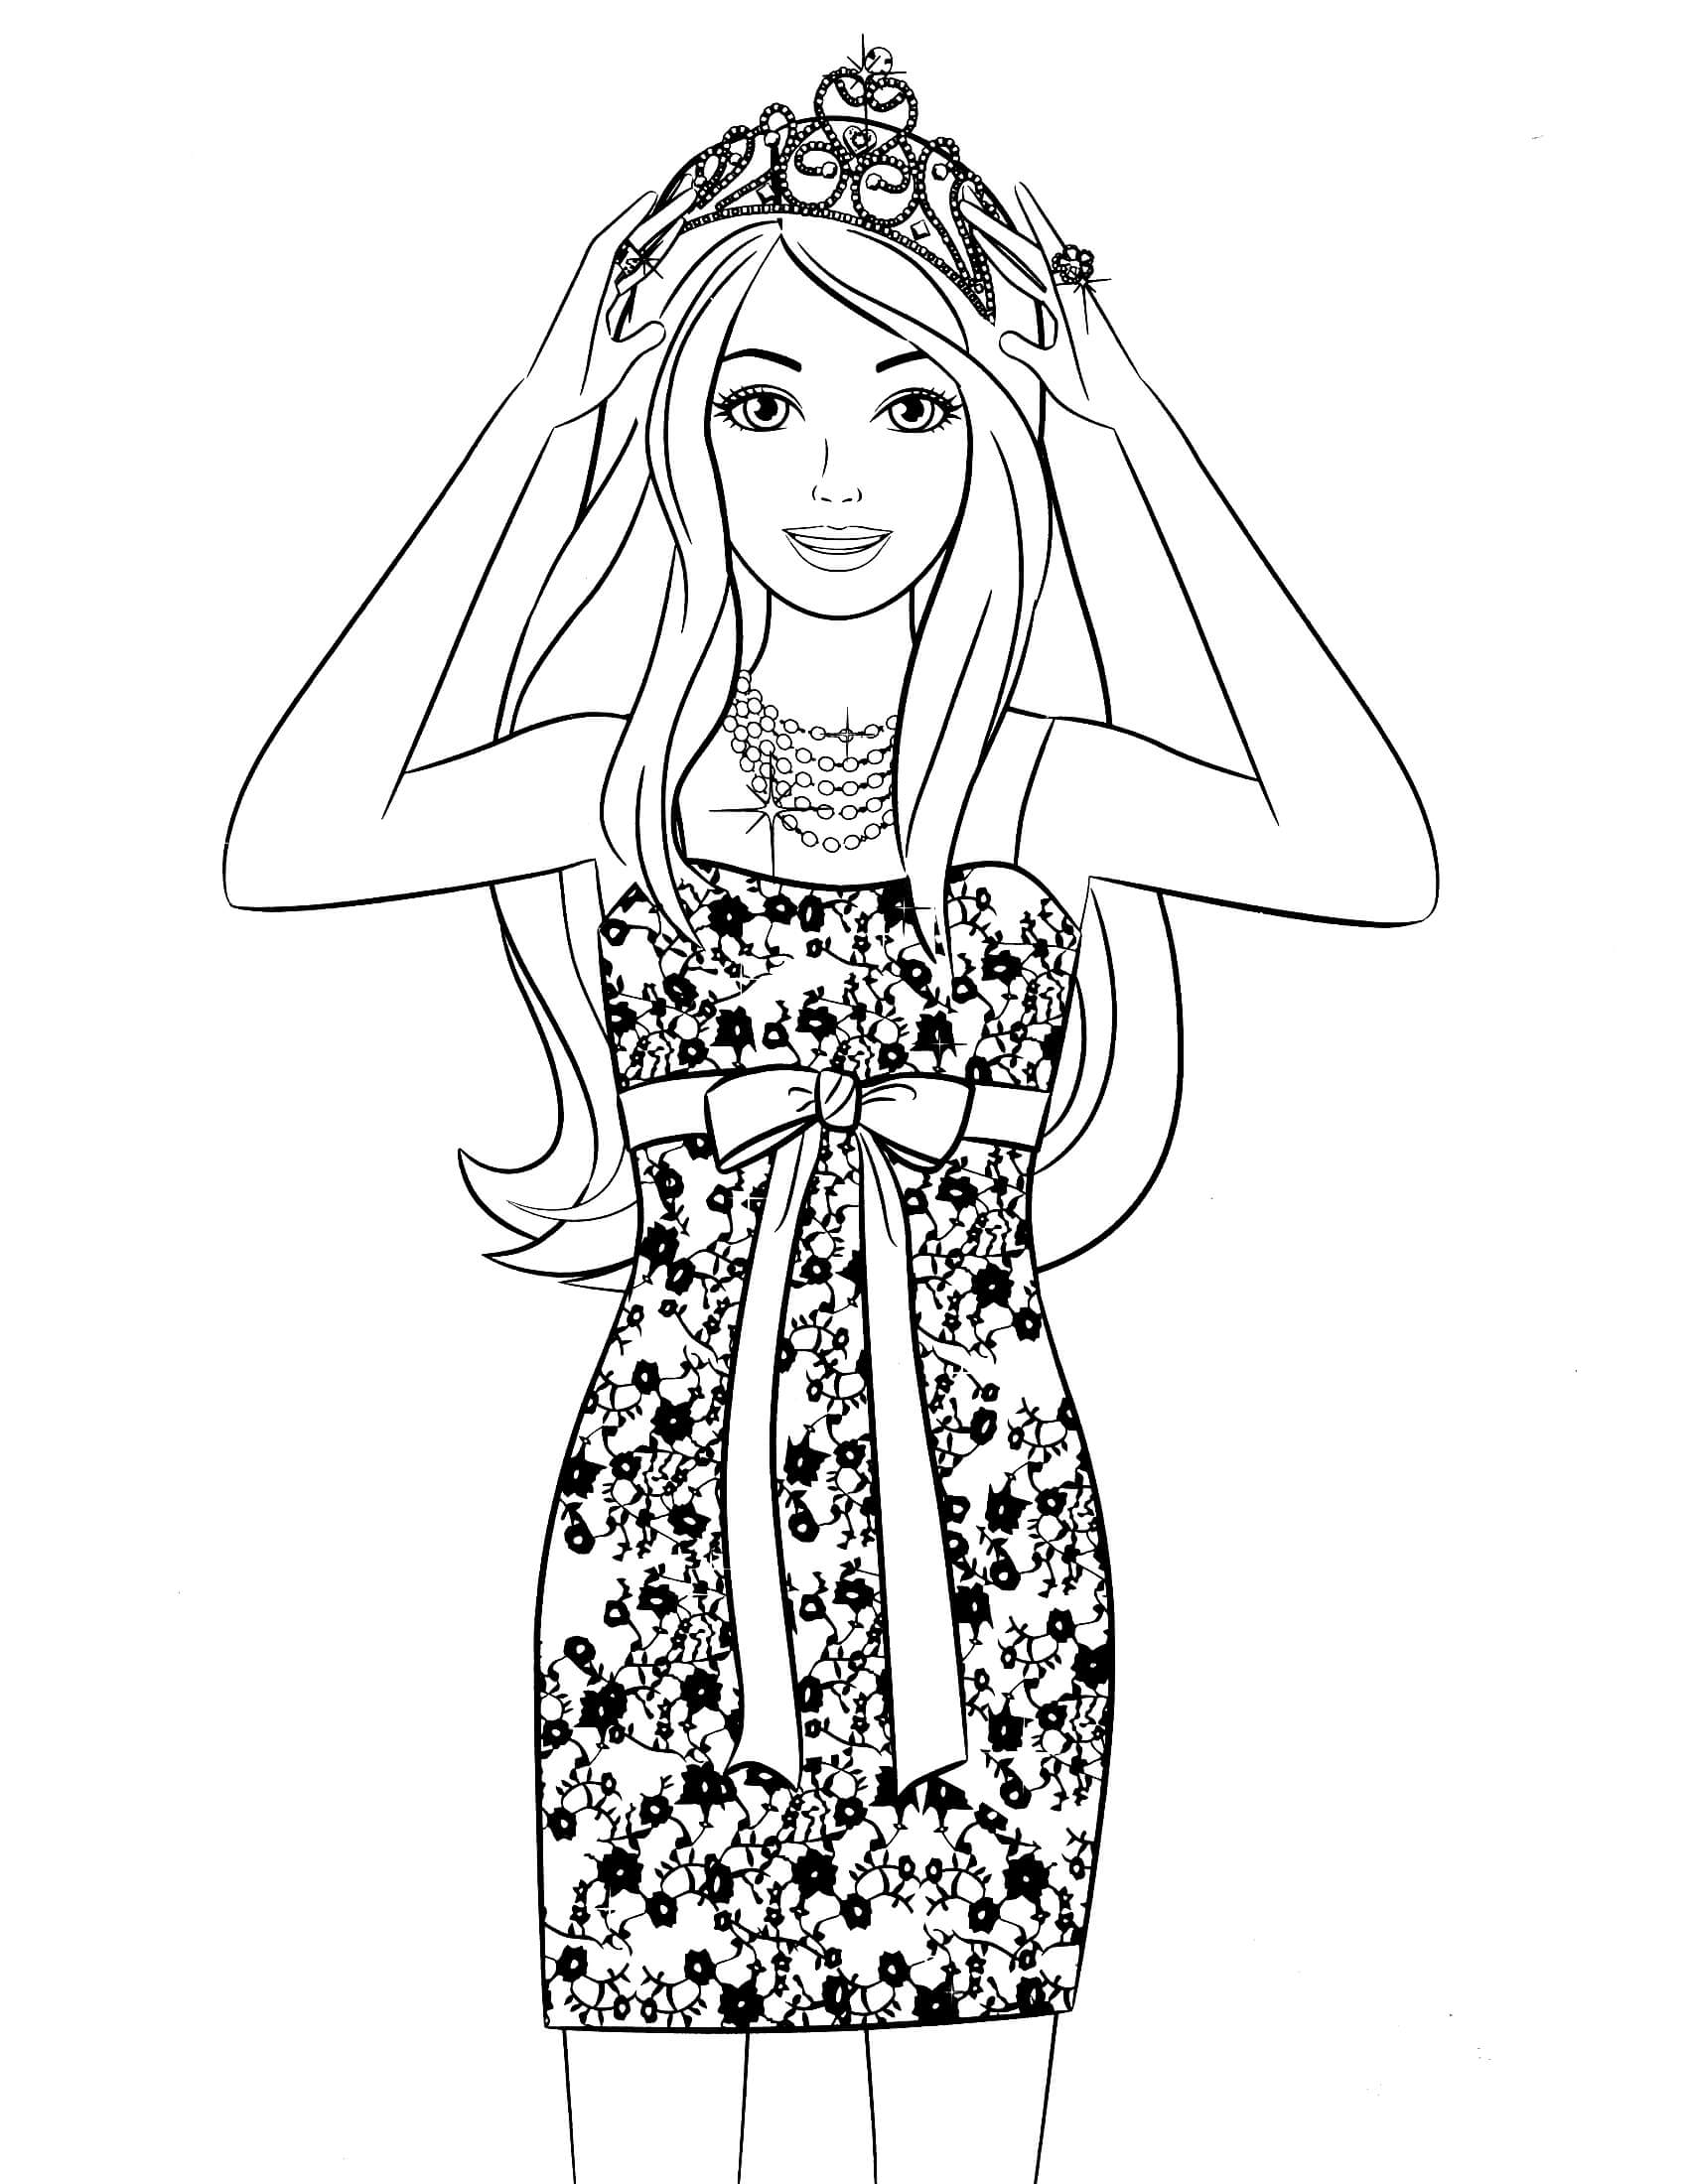 coloring pages for boys - barbie coloring page 89